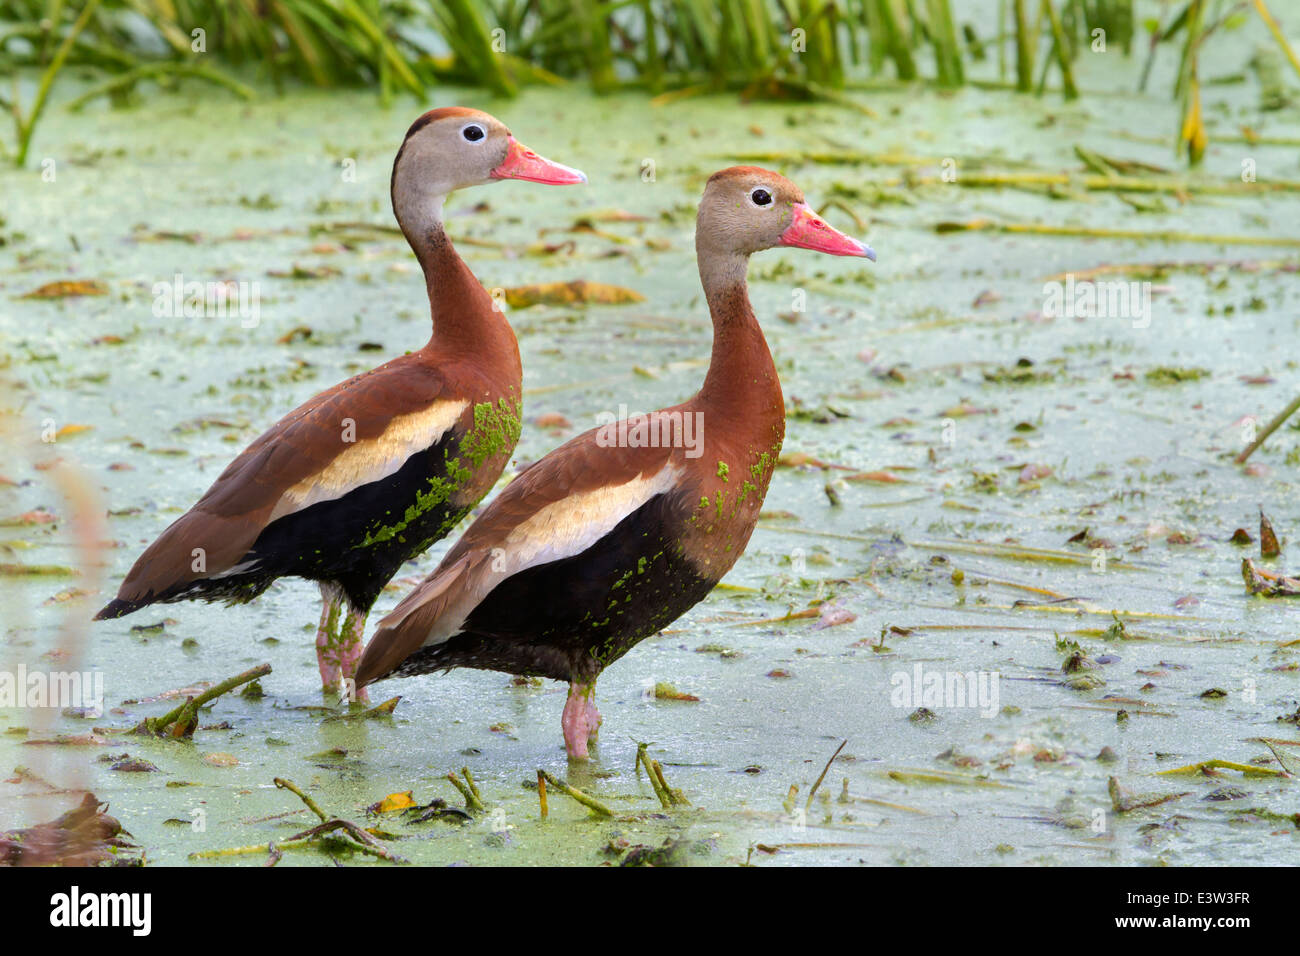 A pair of Black-bellied whistling ducks (Dendrocygna autumnalis) in a swamp covered with duckweed. - Stock Image